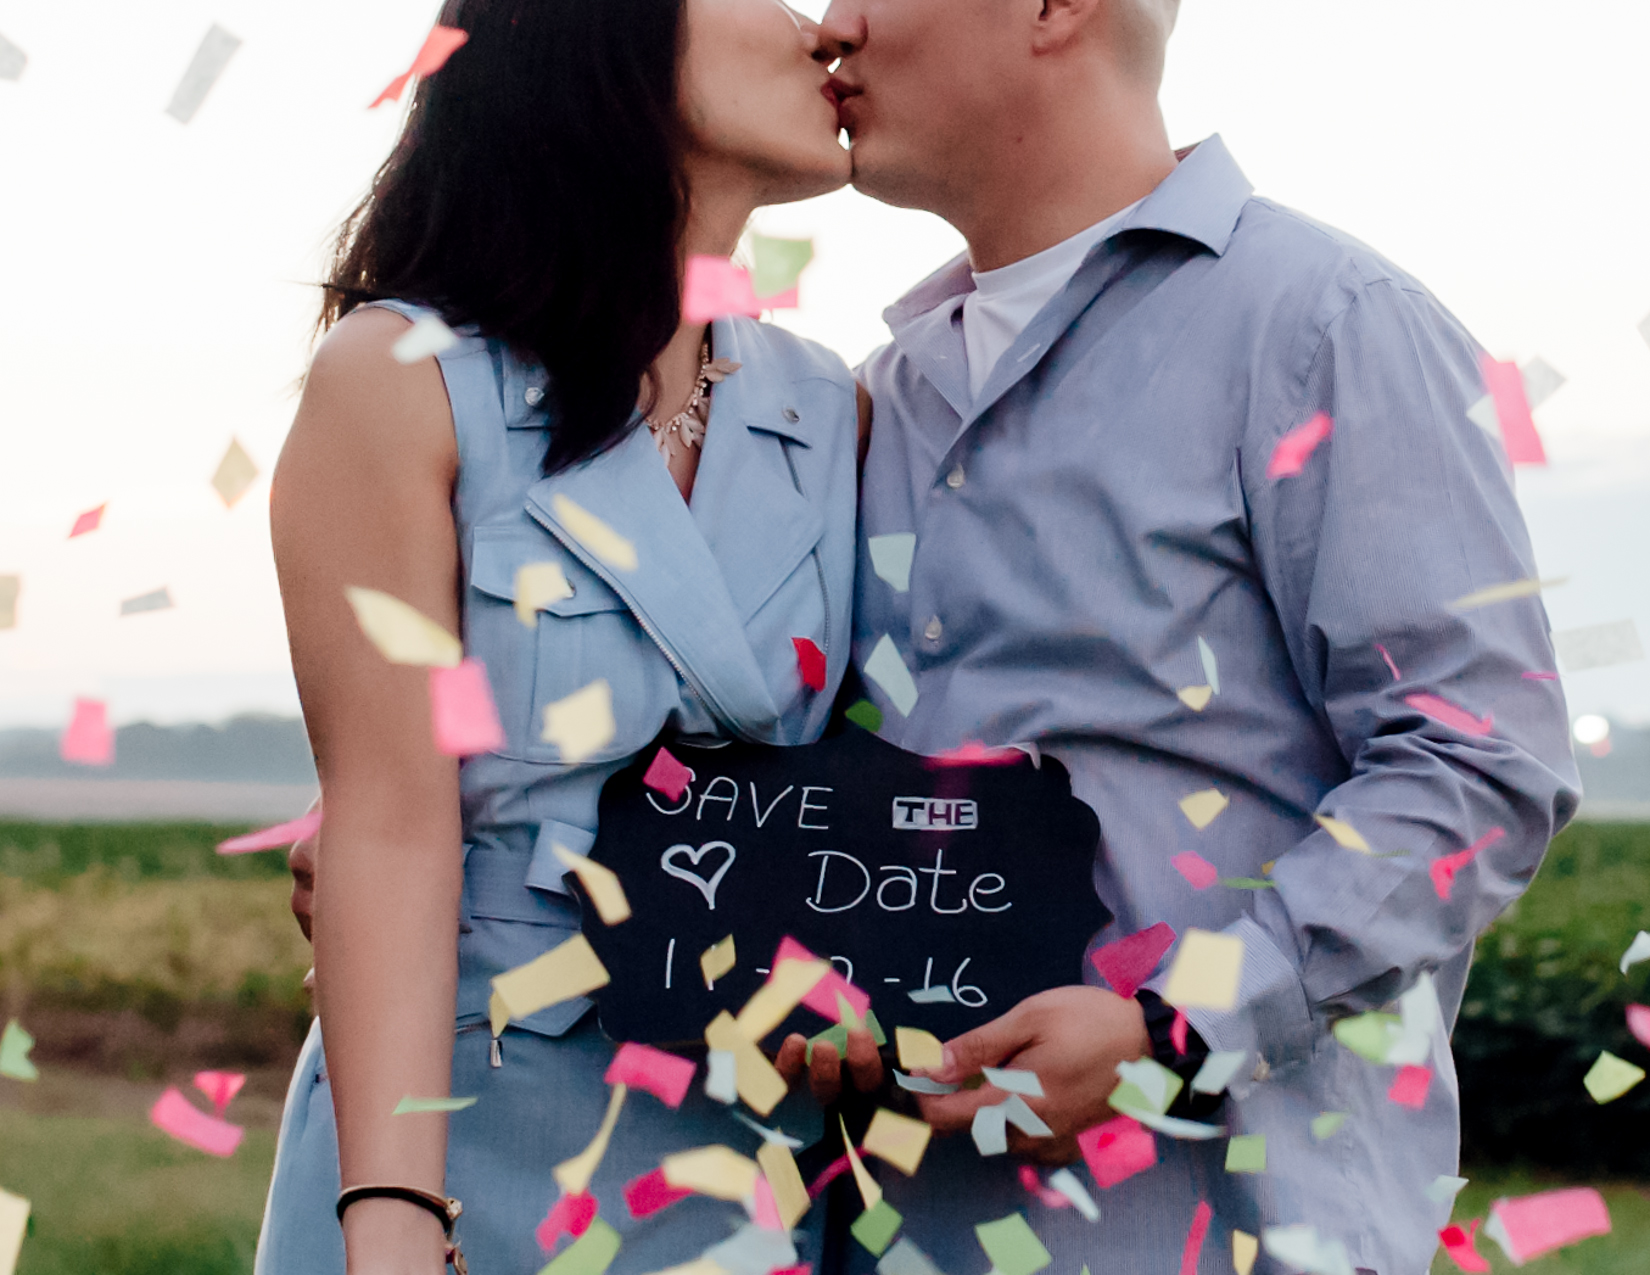 engagement_downtown_fredericksburg_virginiaweddingphotographer_youseephotography_HelenPaul (27).jpg